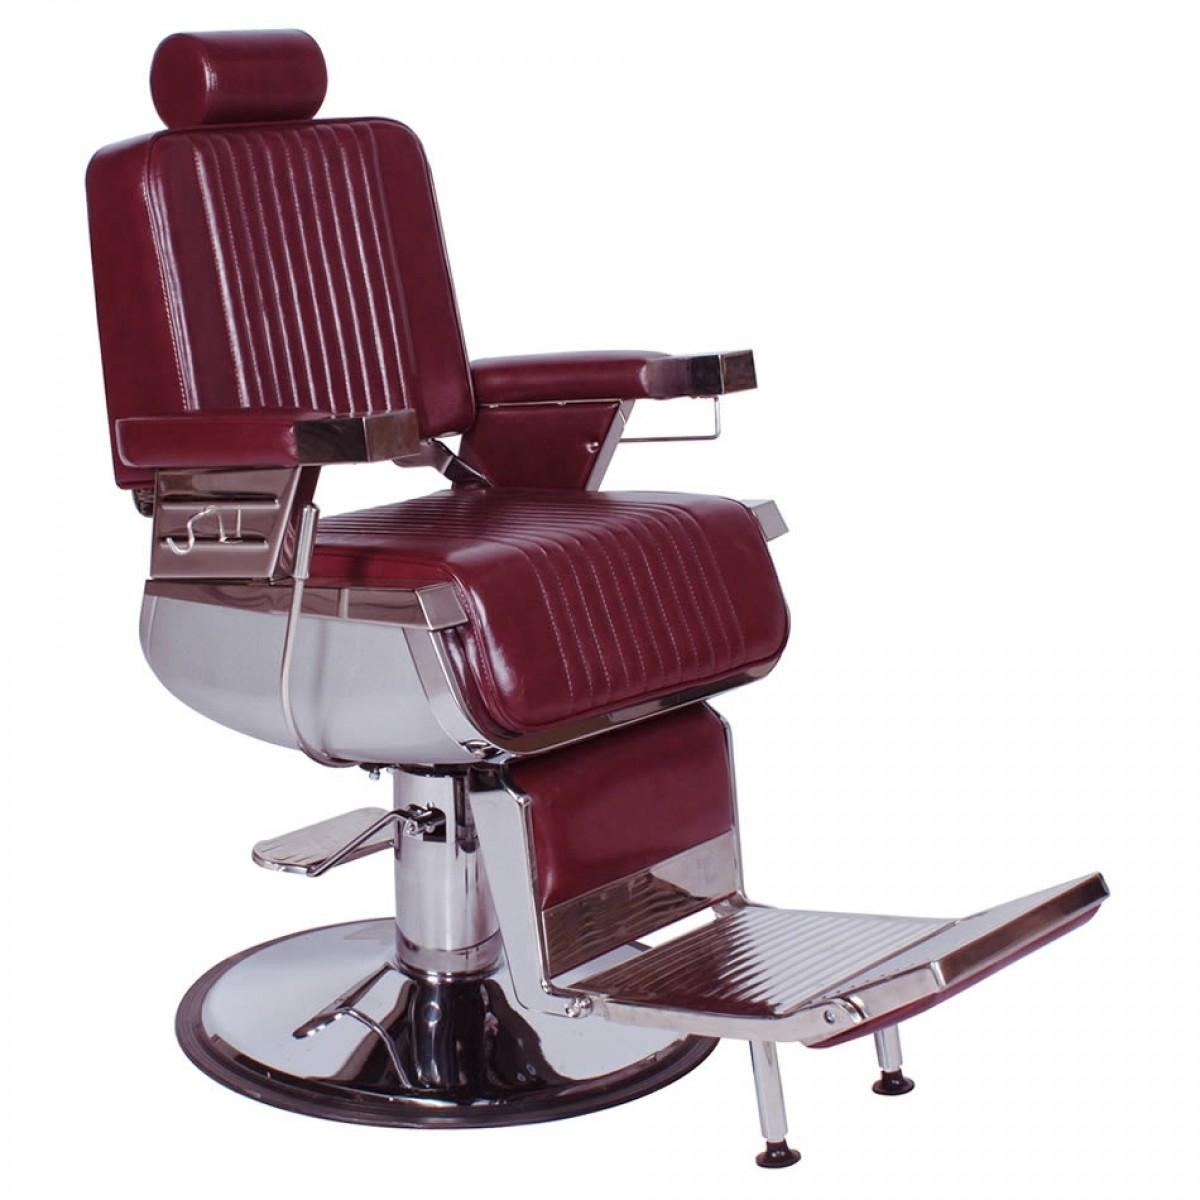 All Purpose Reclining Vintage Barber Chair For Sale Oem